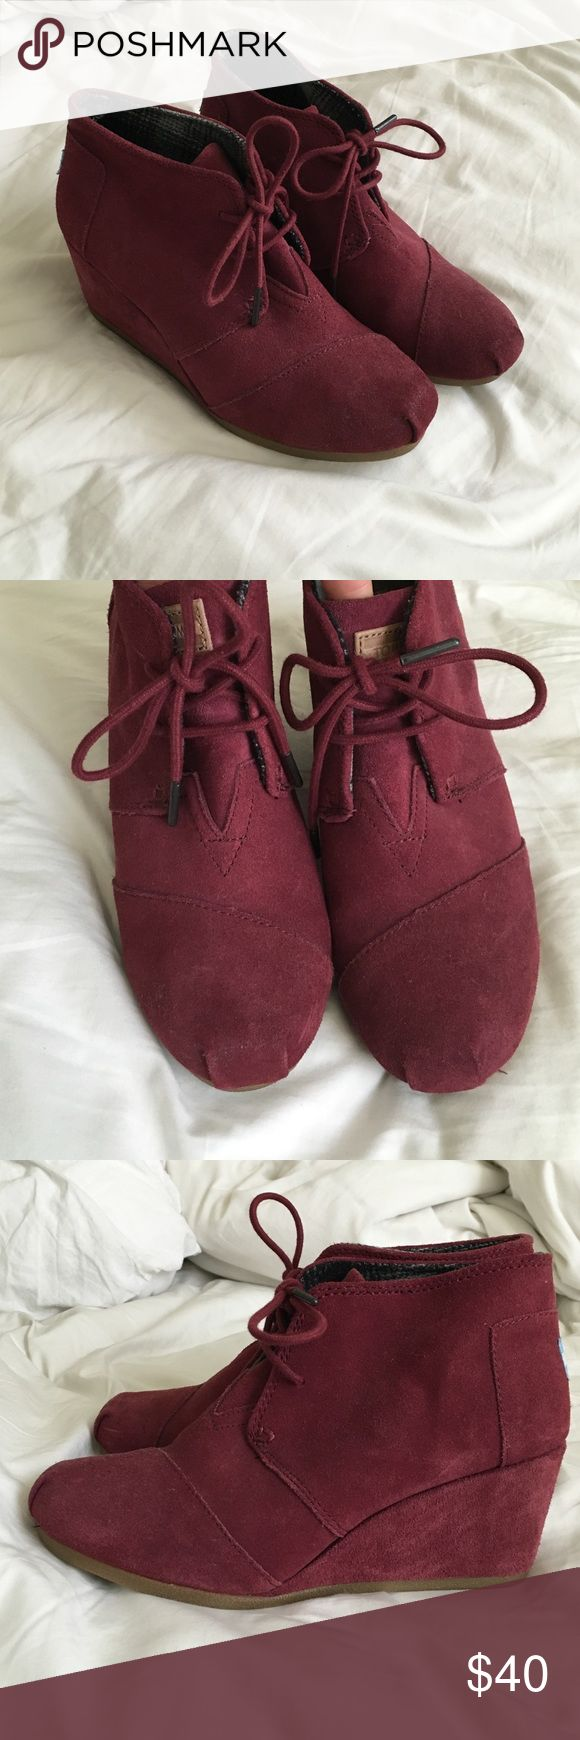 Women's tom wedges Worn once, extremely comfortable. In great condition! They are a burgundy maroon type color. TOMS Shoes Wedges